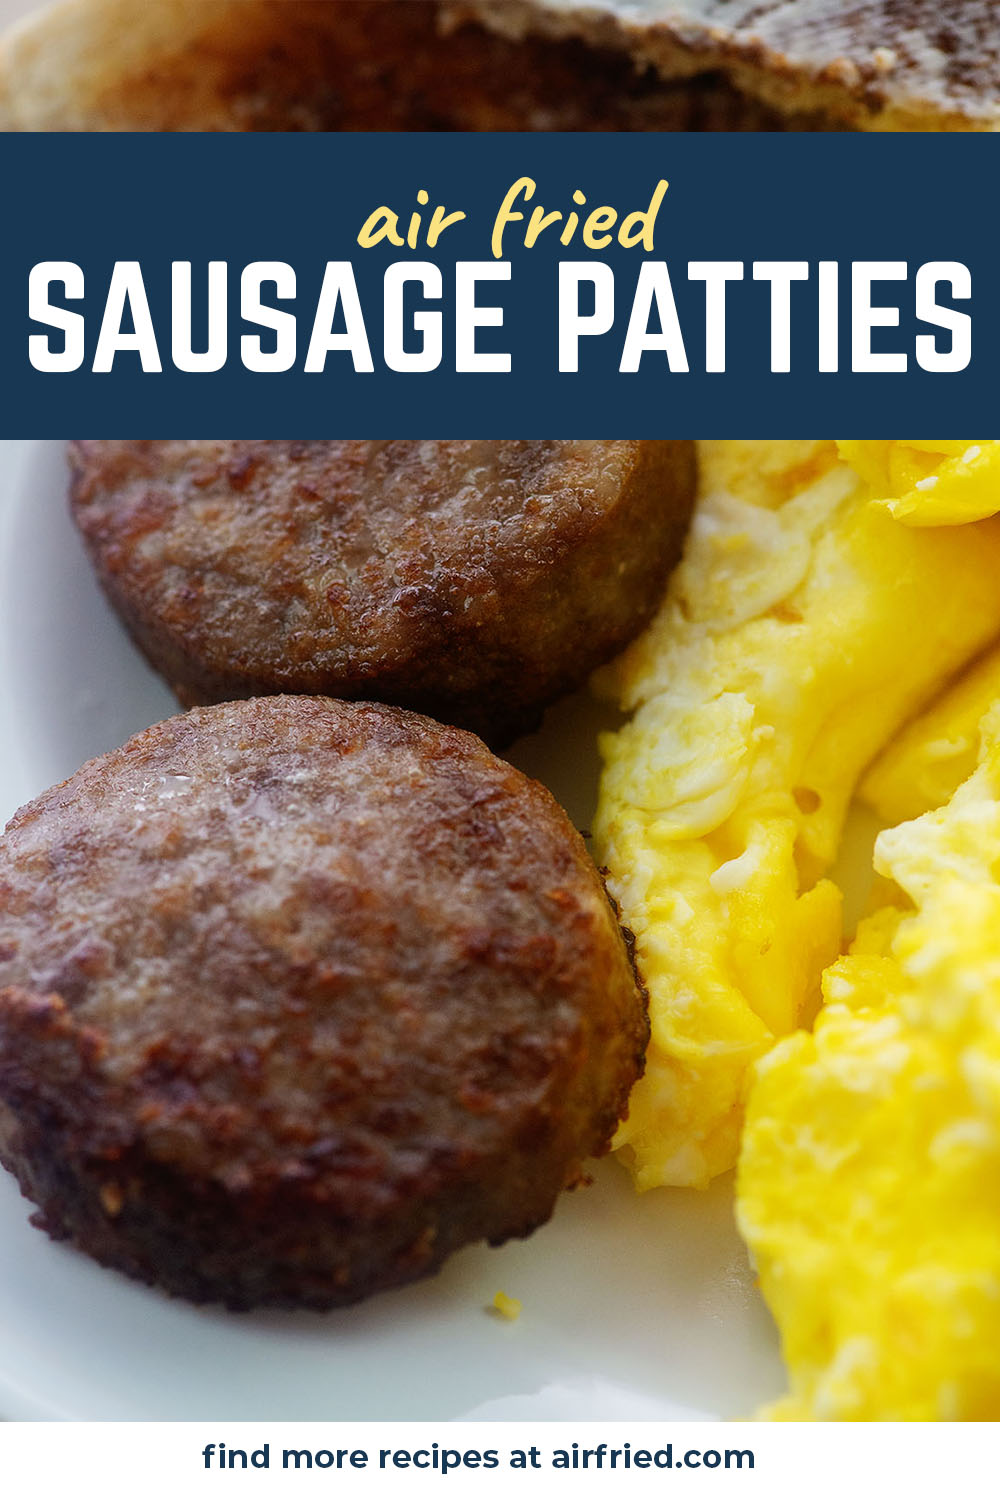 Air fried sausage patties are cooked absolutely perfectly and slightly crisp.